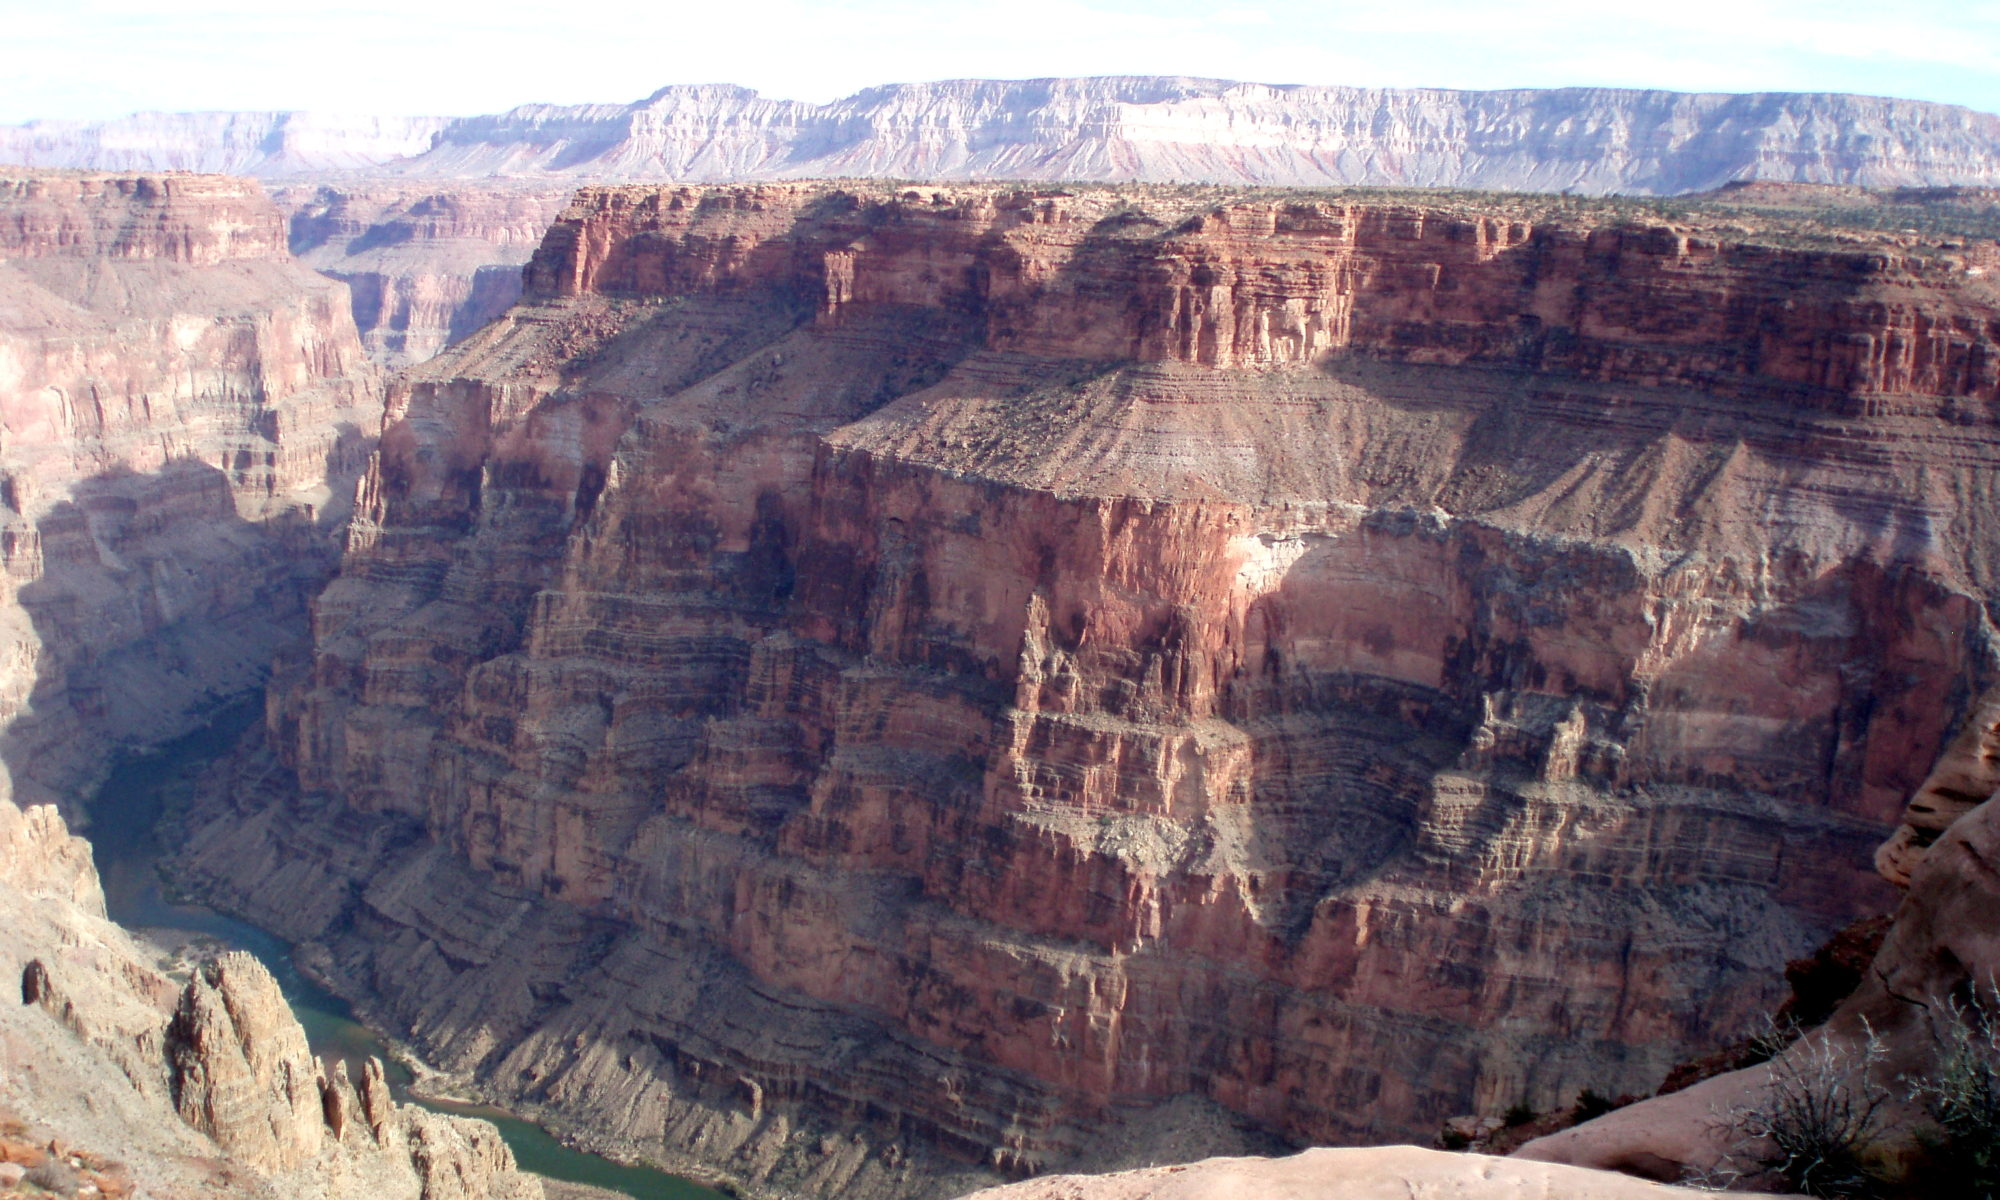 View of Grand Canyon from Toroweap